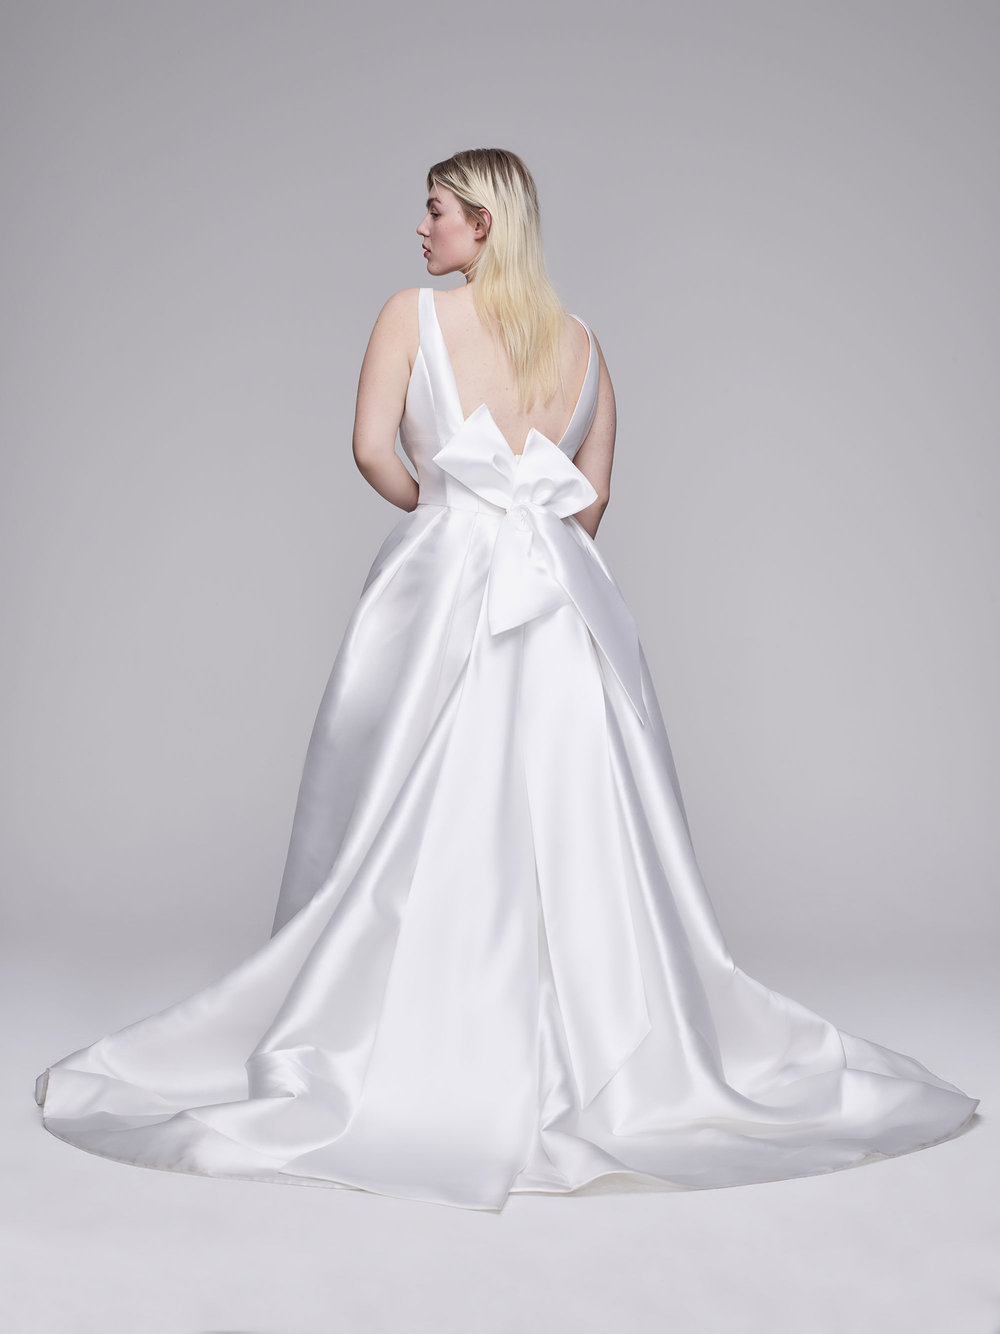 https://www.annebarge.com/collections/curve-couture/products/rachel